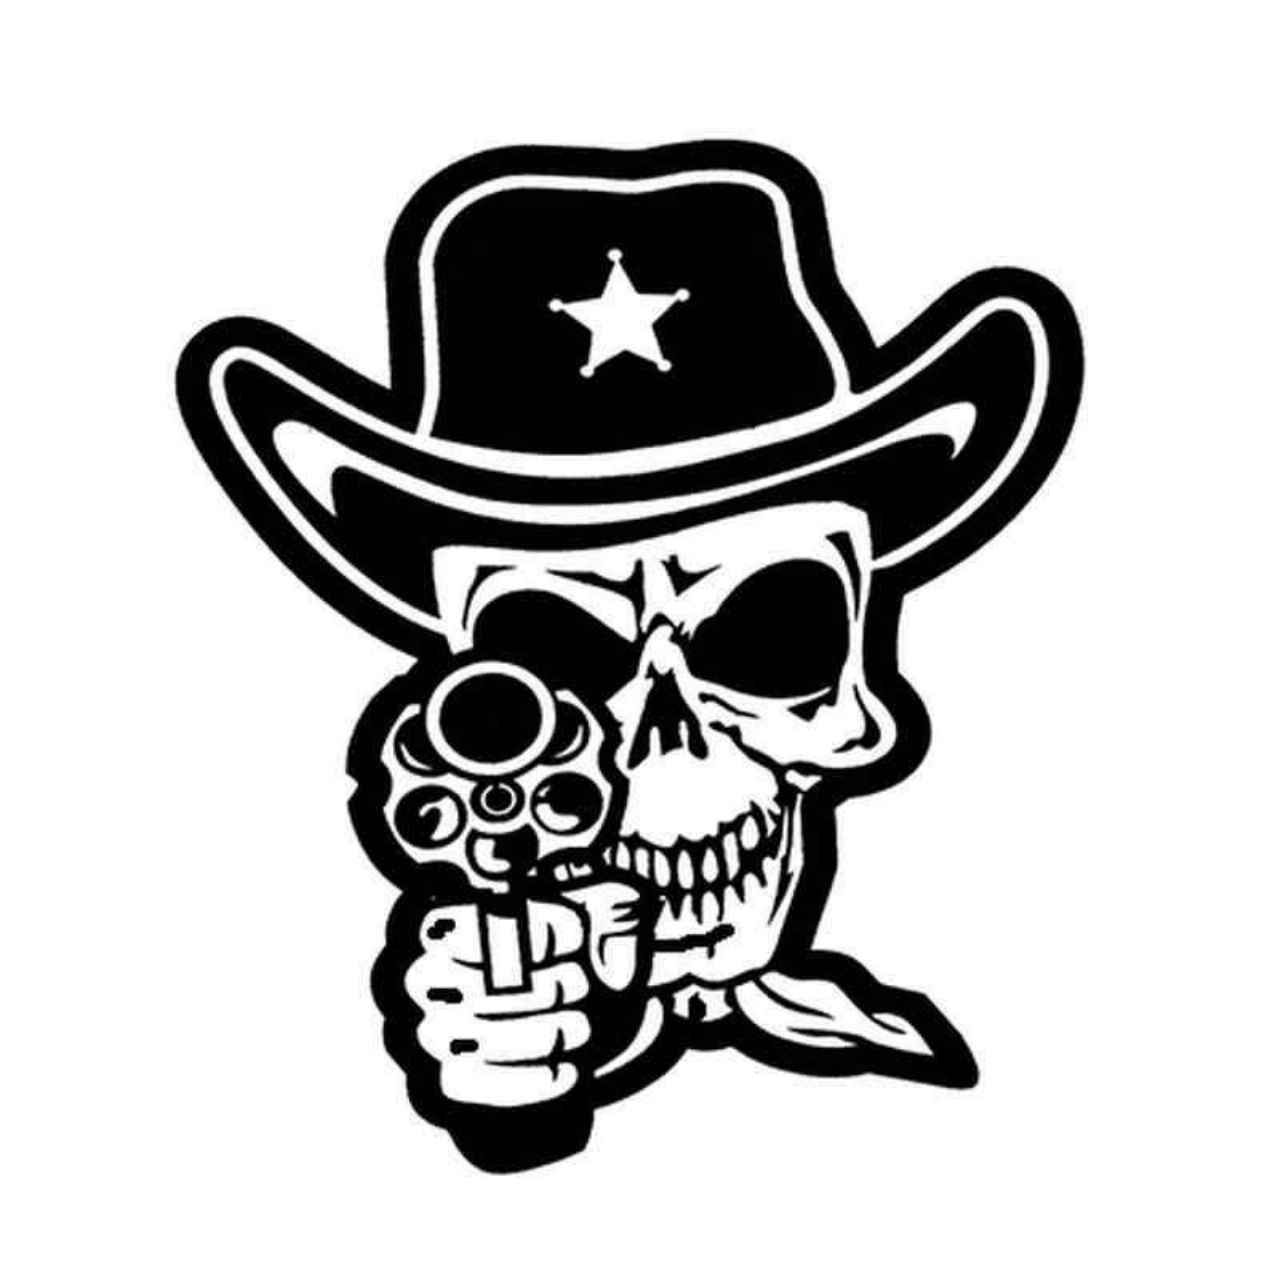 COWBOY TO THE BONE Skull Vinyl Decal Sticker A